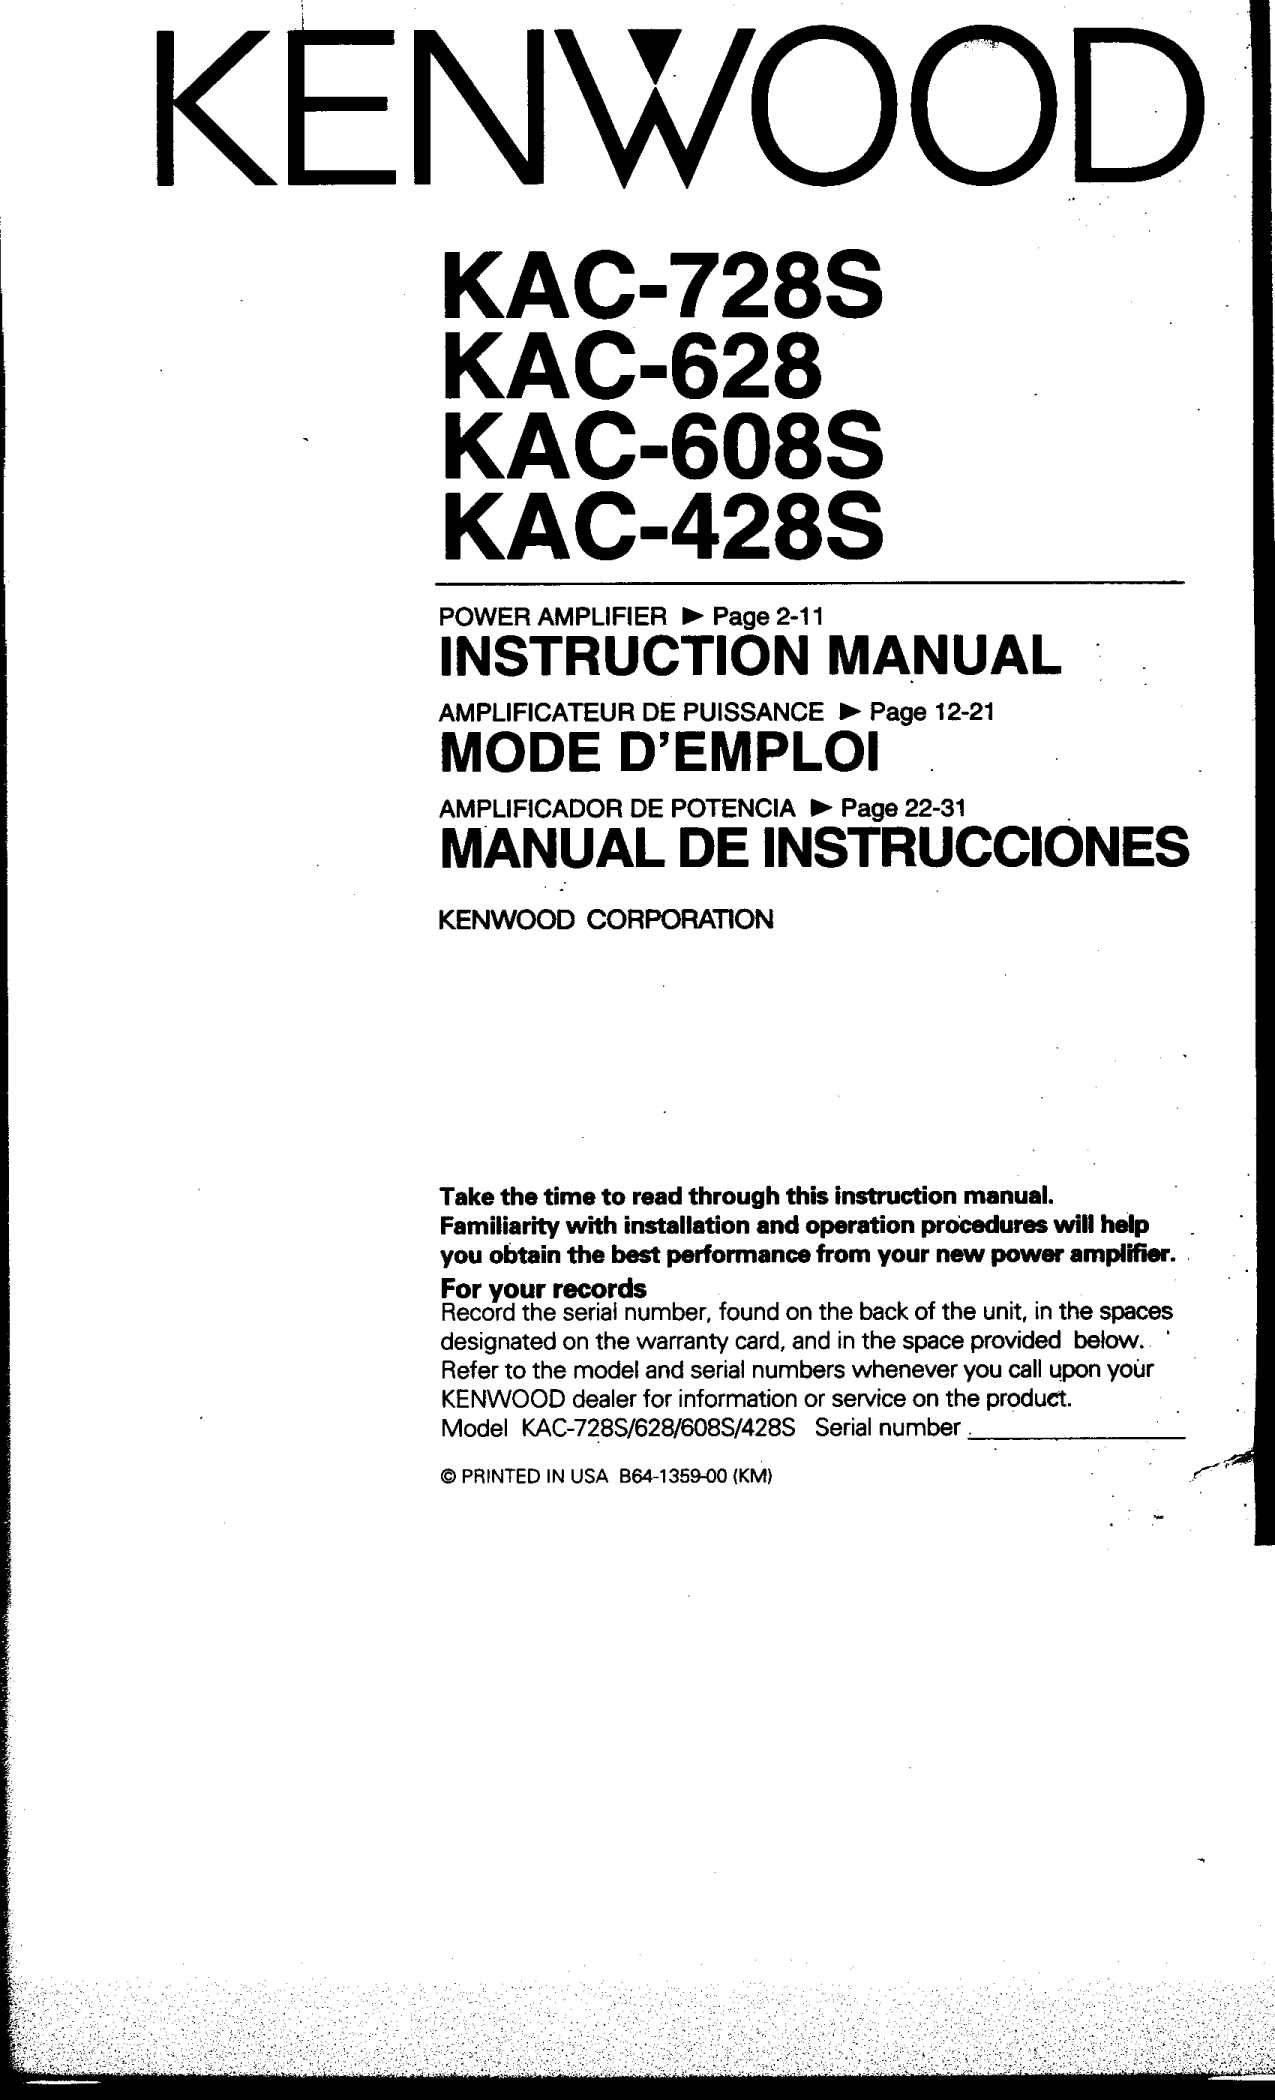 kac728s.pdf 0 download free pdf for kenwood kac 728s car amplifier manual kenwood kac 7285 wiring diagram at virtualis.co